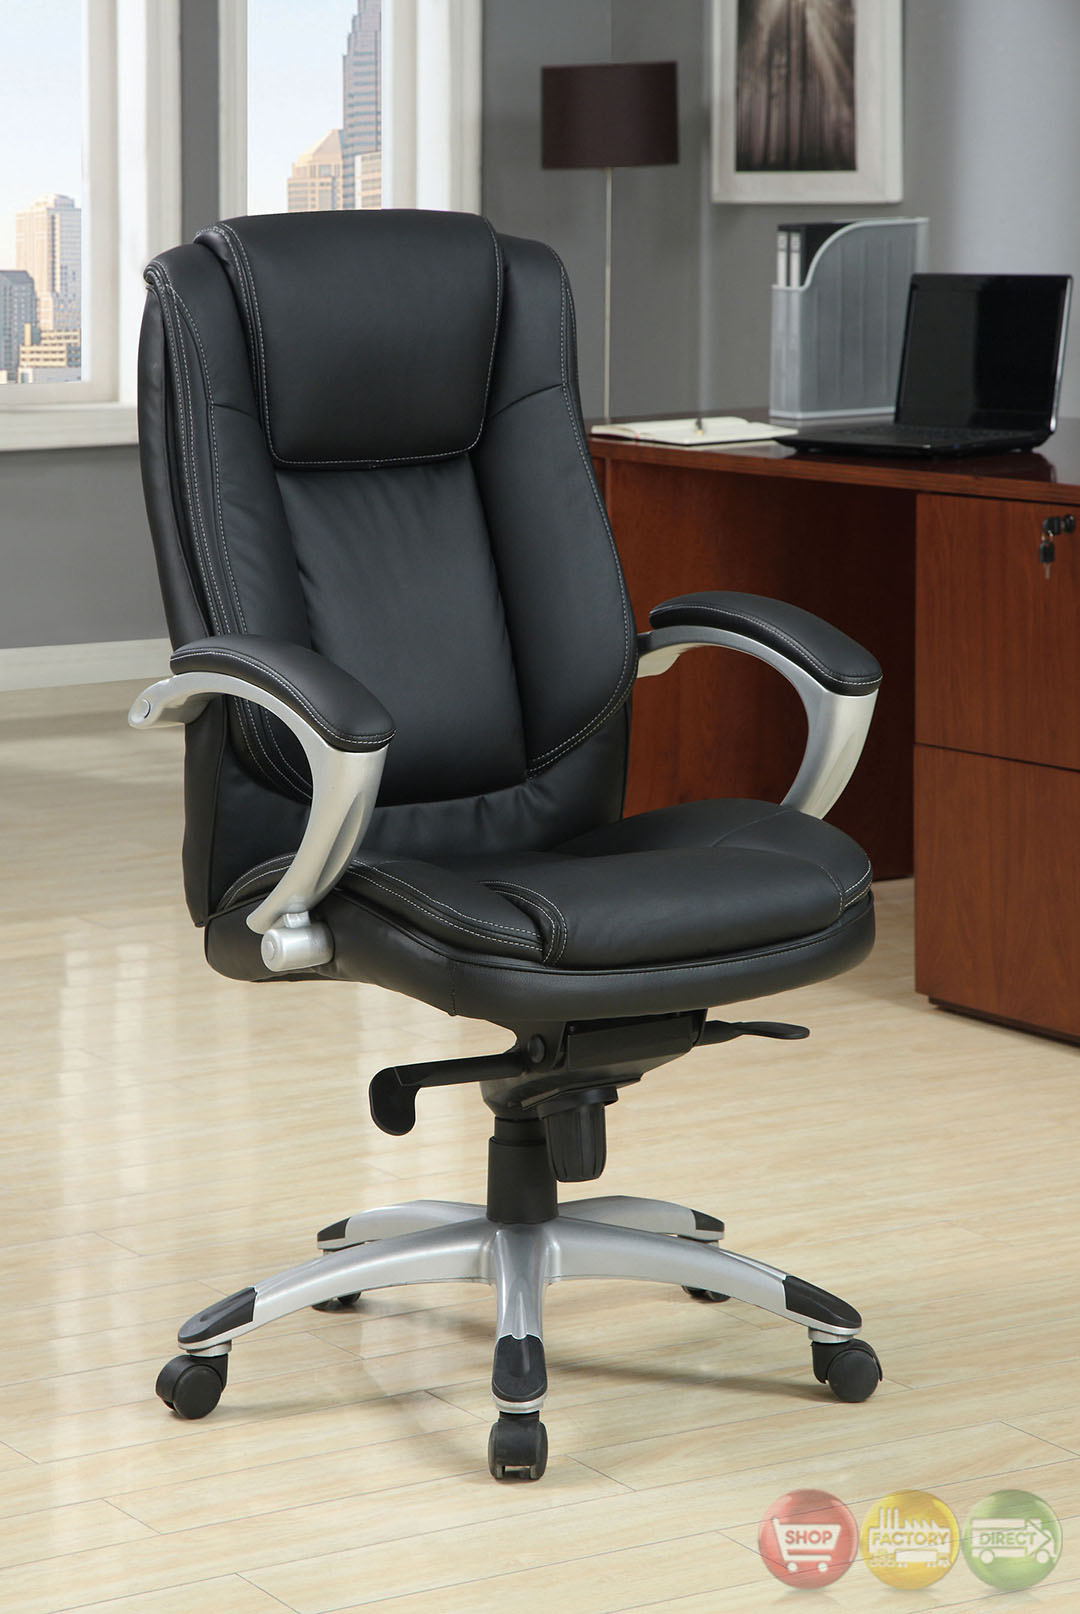 hillsborough black and silver office chair with padded armrests cm